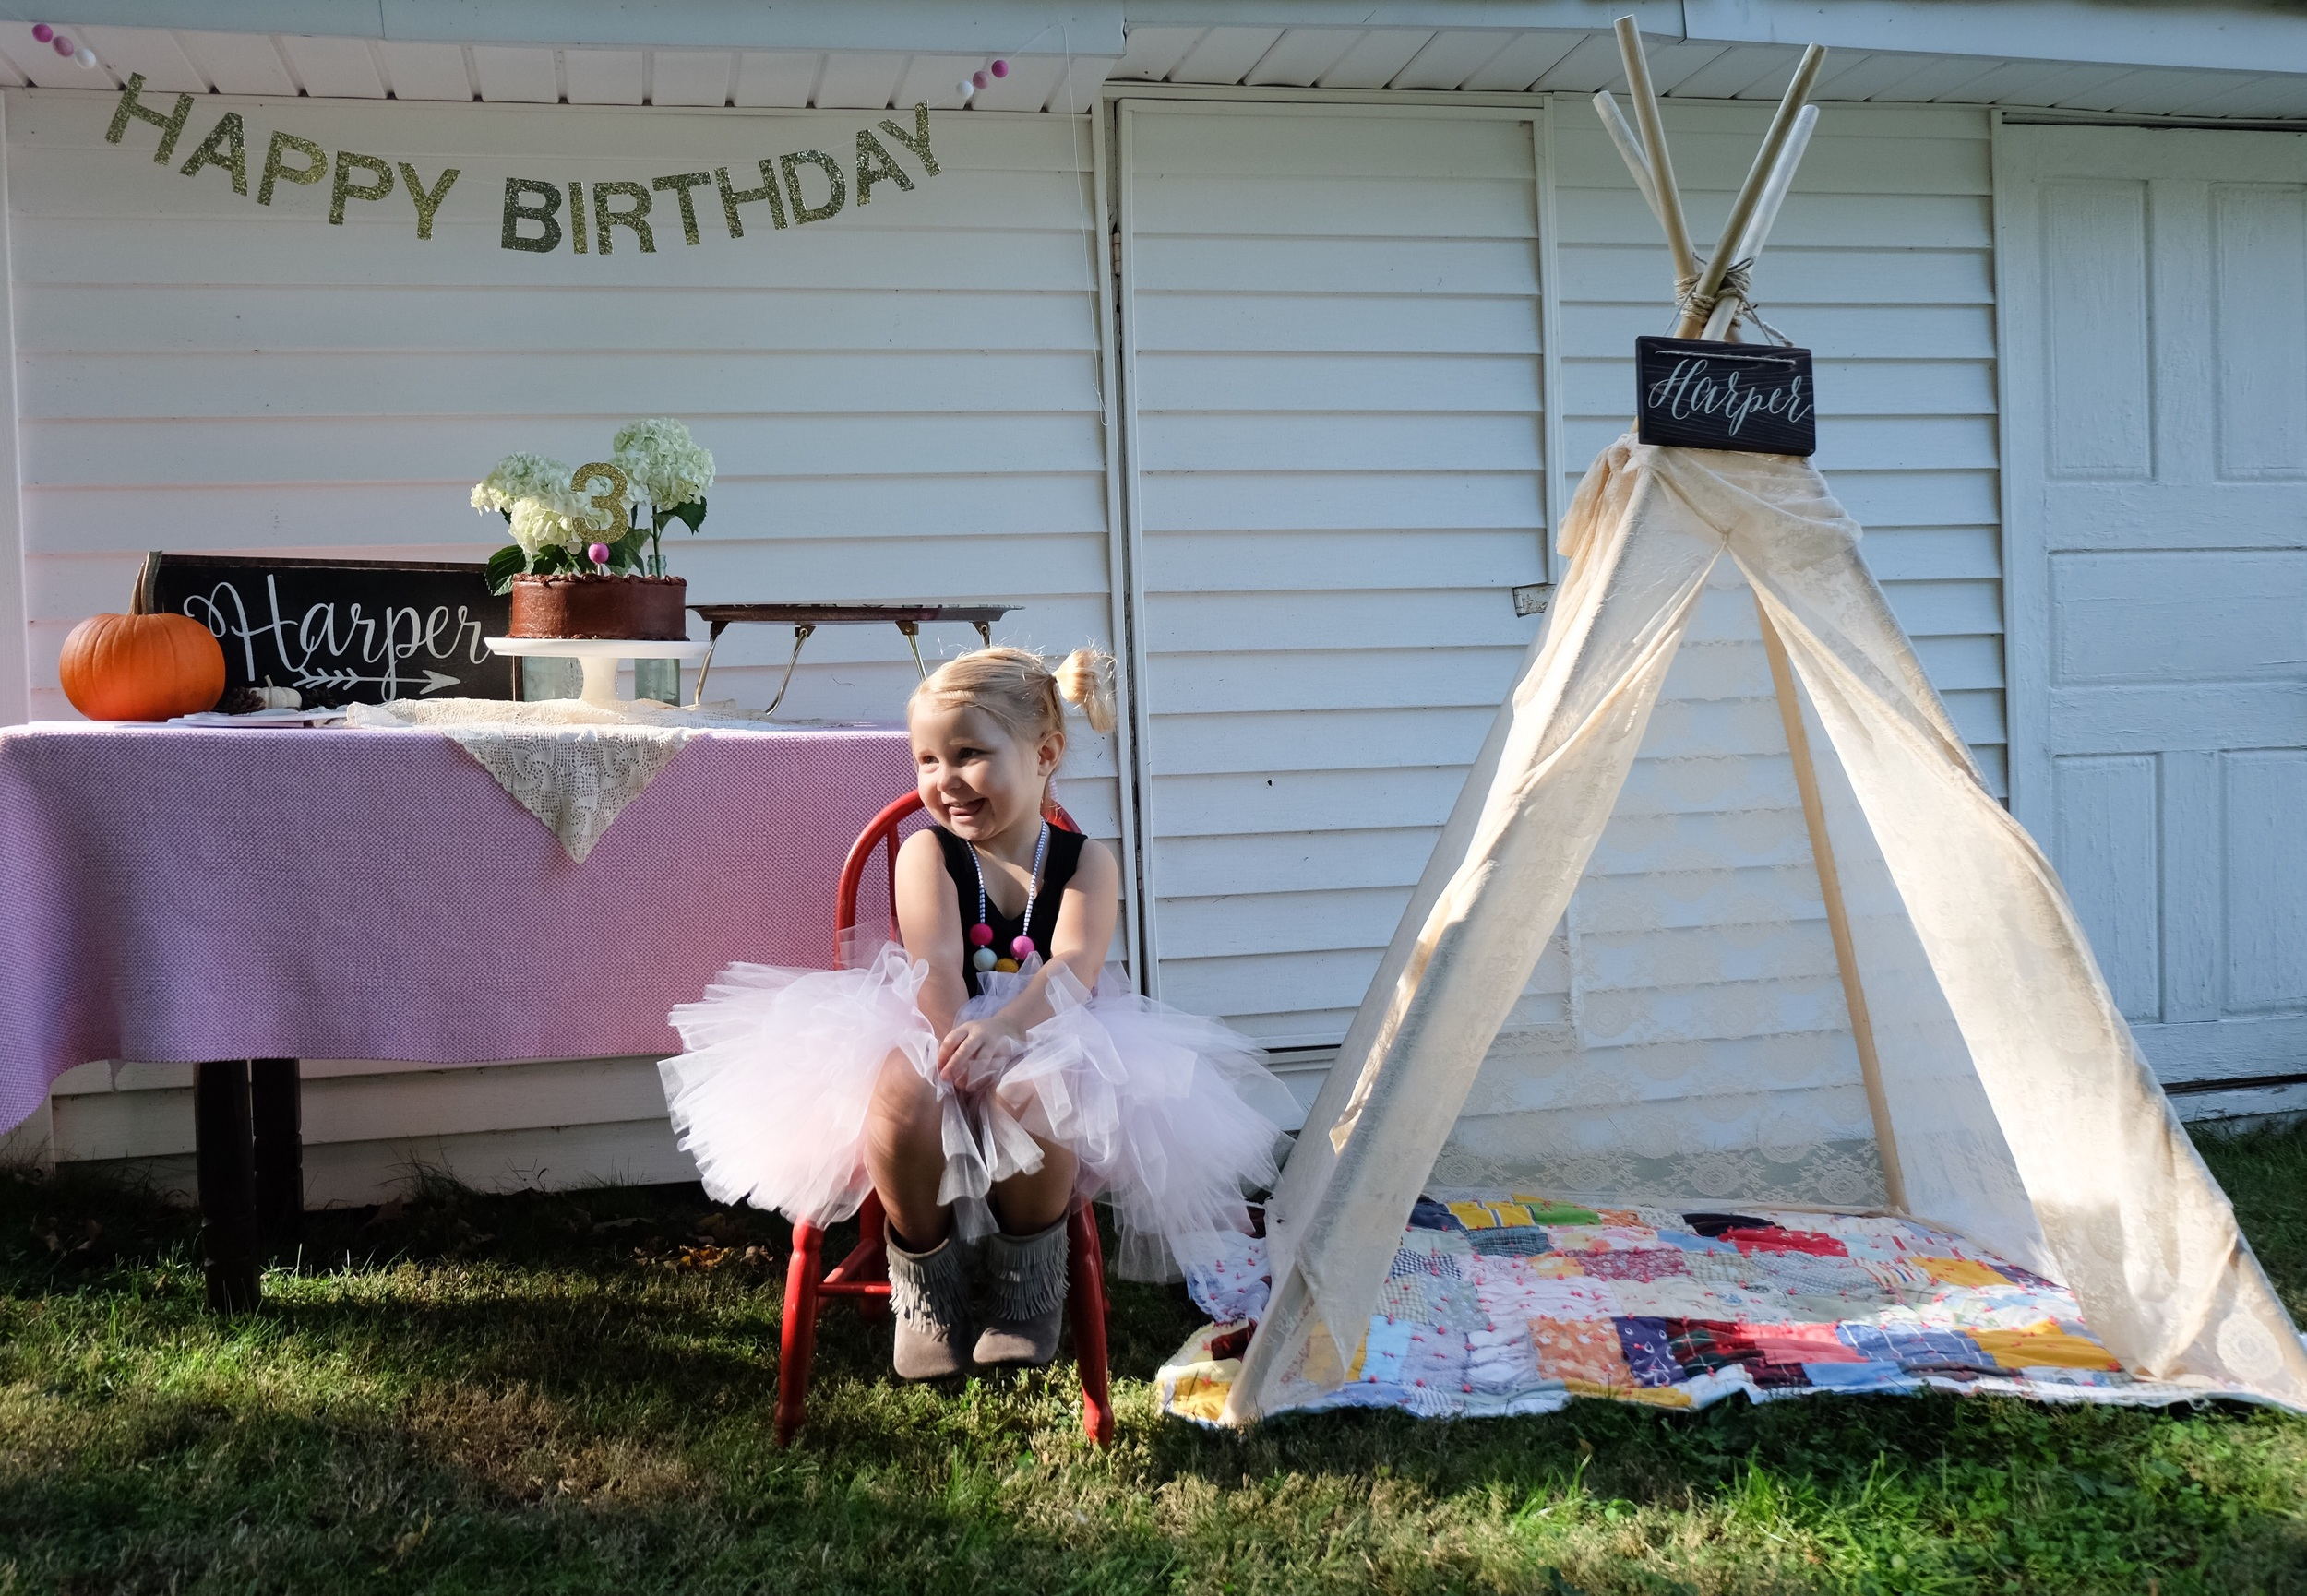 TIPI BY KNIGHT RAVEN TIPI CO !   www.knightraventipico.com   (@KNIGHT_RAVEN_TIPI_CO on INSTAGRAM)   Audrey's tipis are amazing. The quality is unreal and I love the VINTAGE feel!Harp absolutely loves her tipi and plays in it all the time. All our friends loved it!!I love how versatile it is!!   TUTU BY TREVI AVE CO!  www.treviaveco.etsy.com   (@TREVI_AVE_CO)   She felt like a real princess in her gorgeous tutu. I love how flowy it was! Everyday she asks if she can wear her tutu!    BOOTS BY GRACIOUS MAY!  www.graciousmay.com  (@GRACIOUS_MAY)   We have Gracious May boots in every color. They are her favorite and go with every outfit she has!!   HAPPY BIRTHDAY SIGN, CAKE TOPPER & NECKLACE BY LITTLE DOVIE !   www.littledovie.com  (@LITTLEDOVIE)   Little Dovie is so sweet!! She sent them to me last minute! They are so beautiful. The gold glitter was exactly what I was looking for. Harper just kept saying how pretty they were! Just look at that necklace!!   HARPER SIGNS FROM THE PAINTED NEST!  www.etsy.com/shop/thepaintednestor  (@THEPAINTEDNEST)   The signs are so unique and I loved how they tied in all the decorations!! I'm excited because we can hang them in her big girl room! The arrow is my favorite!!   CAKE HOLDER IS BY SCHOOLHOUSE ELECTRIC!!  www.schoolhouseelectric.com  (@SCHOOLHOUSE)    Schoolhouse Electric is so fabulous. I love the quality of everything they make. They have gorgeous pieces, especially this cake holder!!  Everything else is vintage!